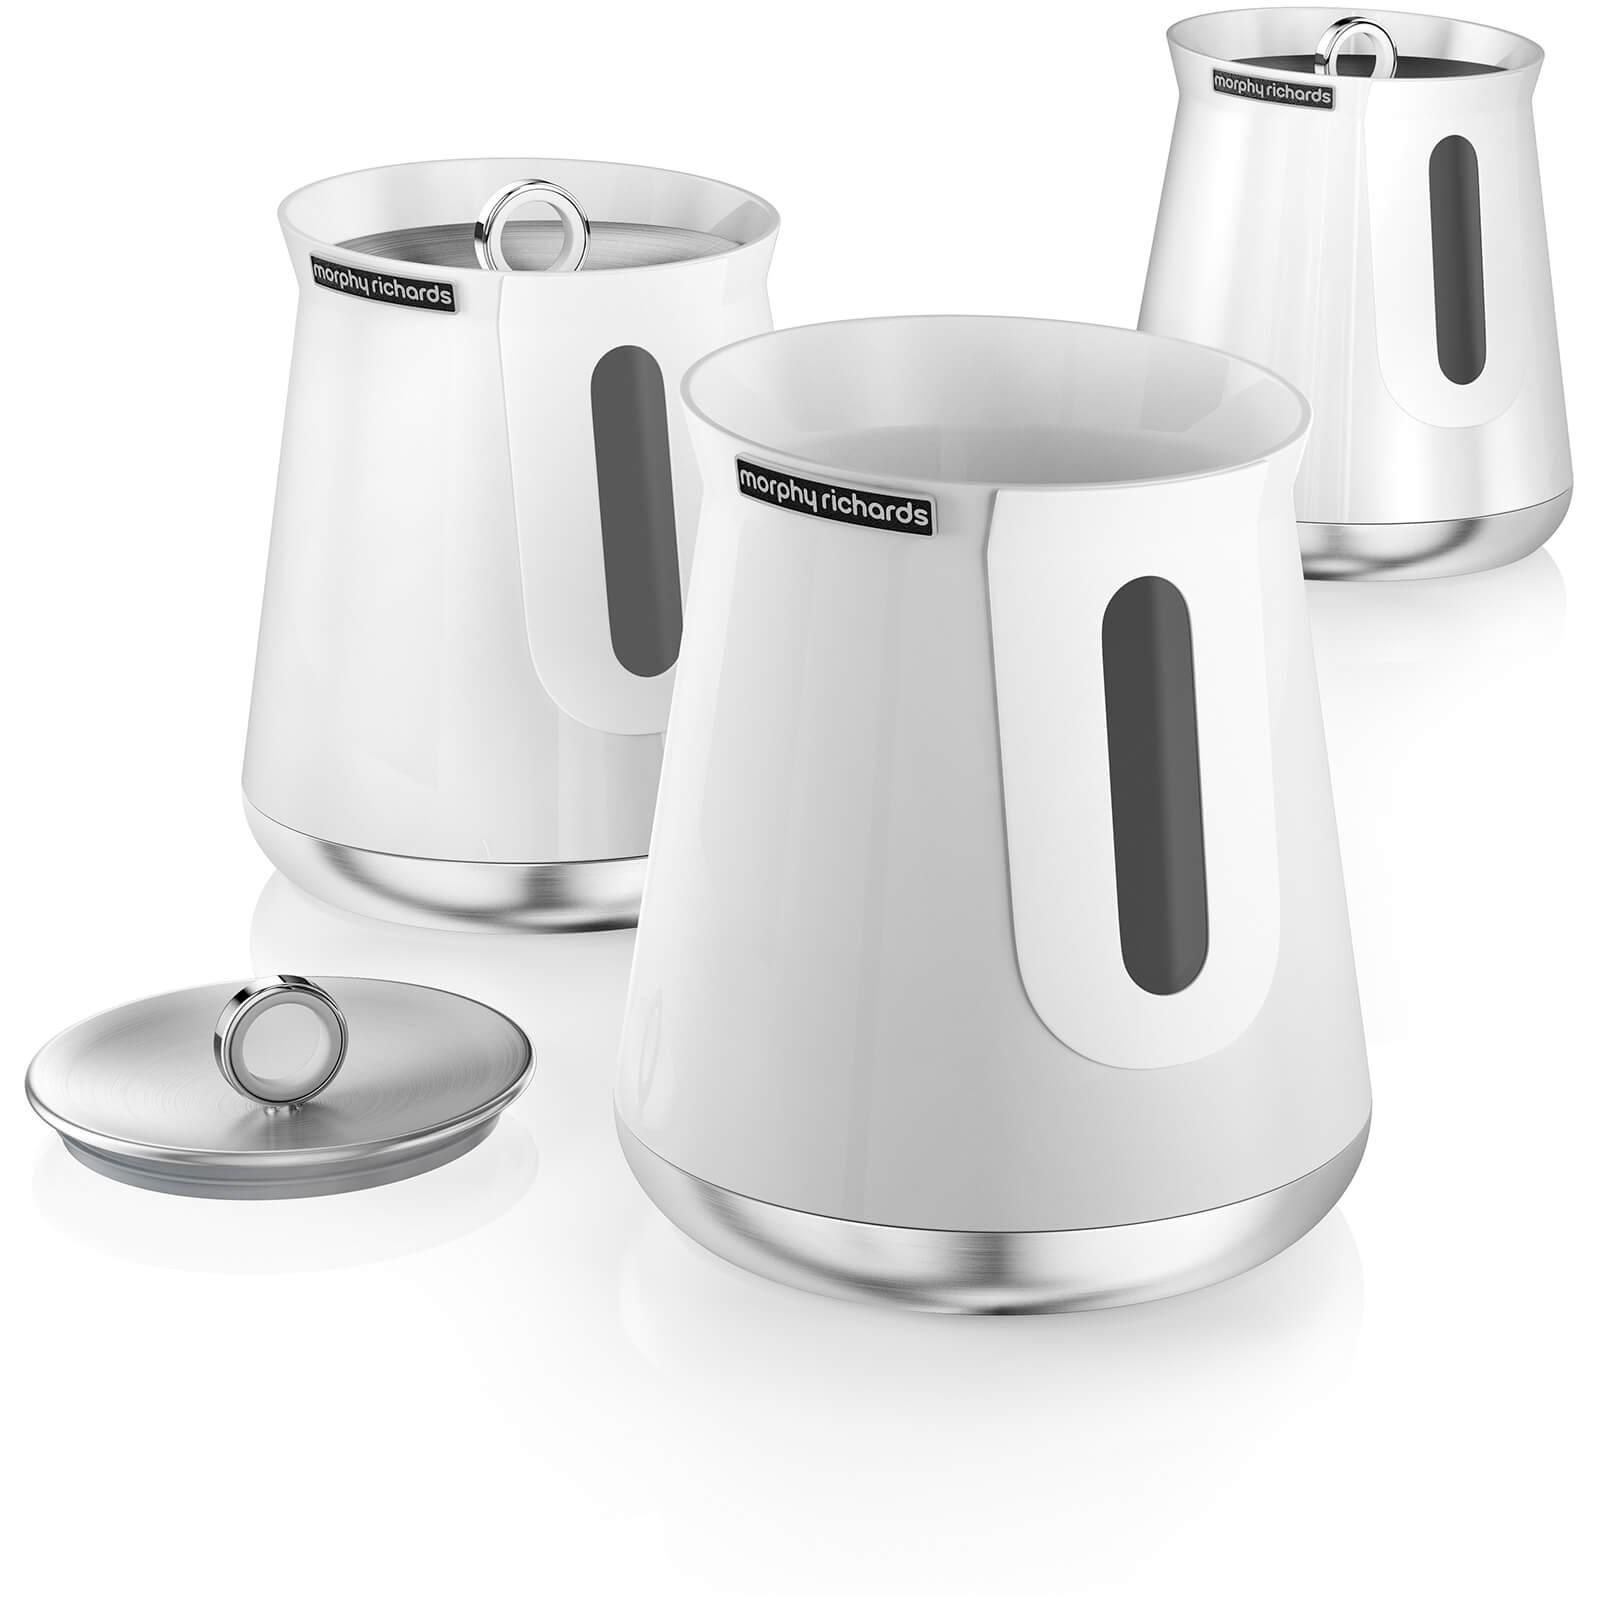 Morphy Richards 972051 Aspect Set of 3 Canisters - White